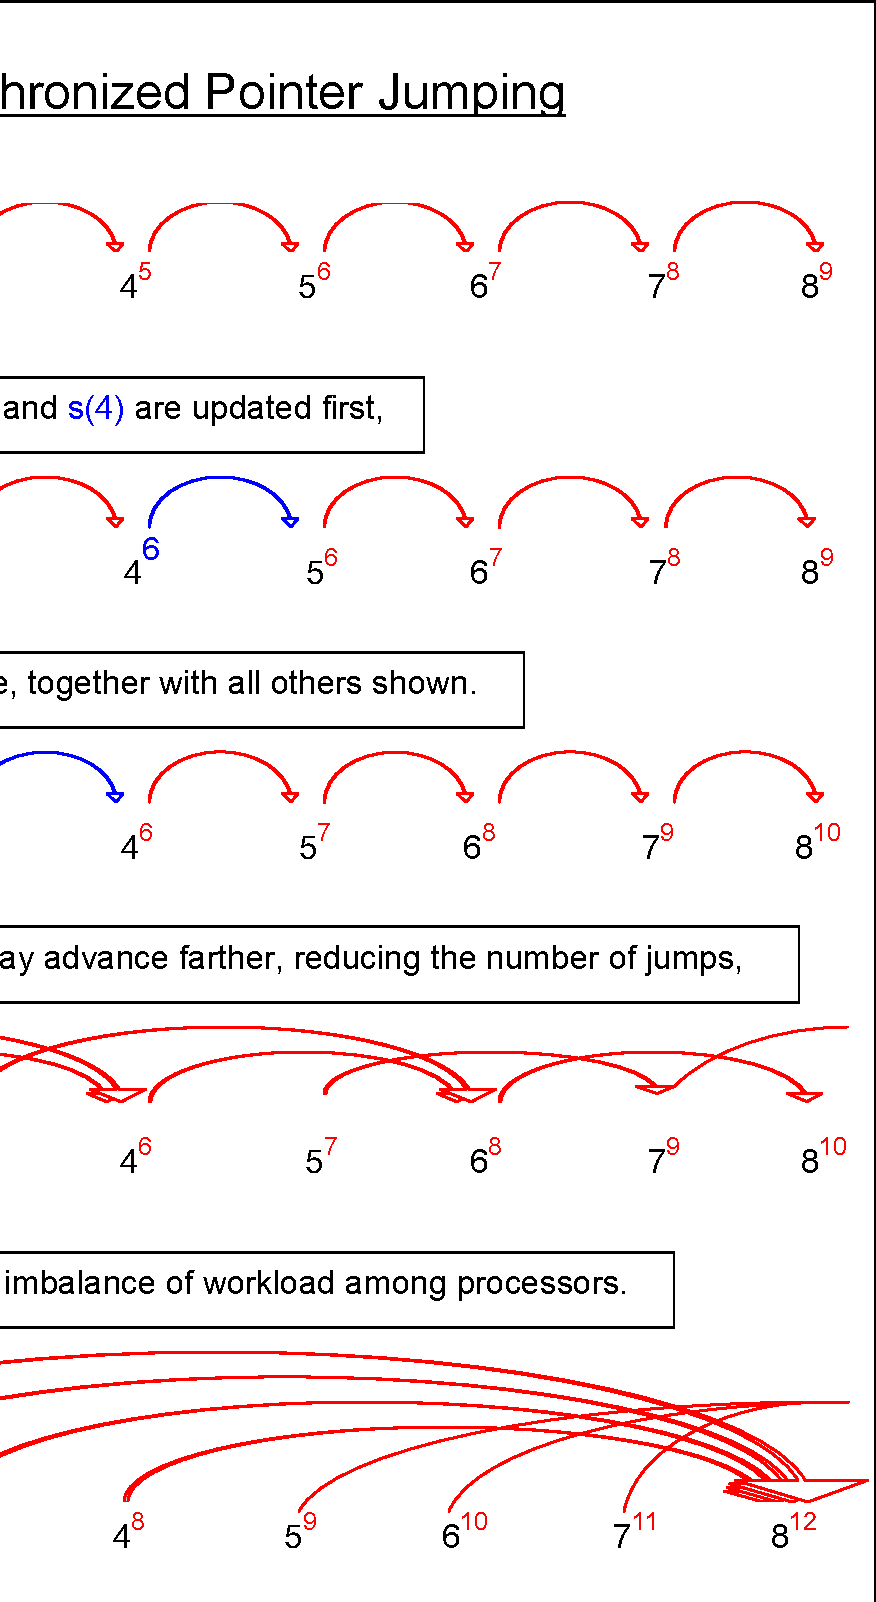 Figure 6: Unsynchronized pointer jumping.